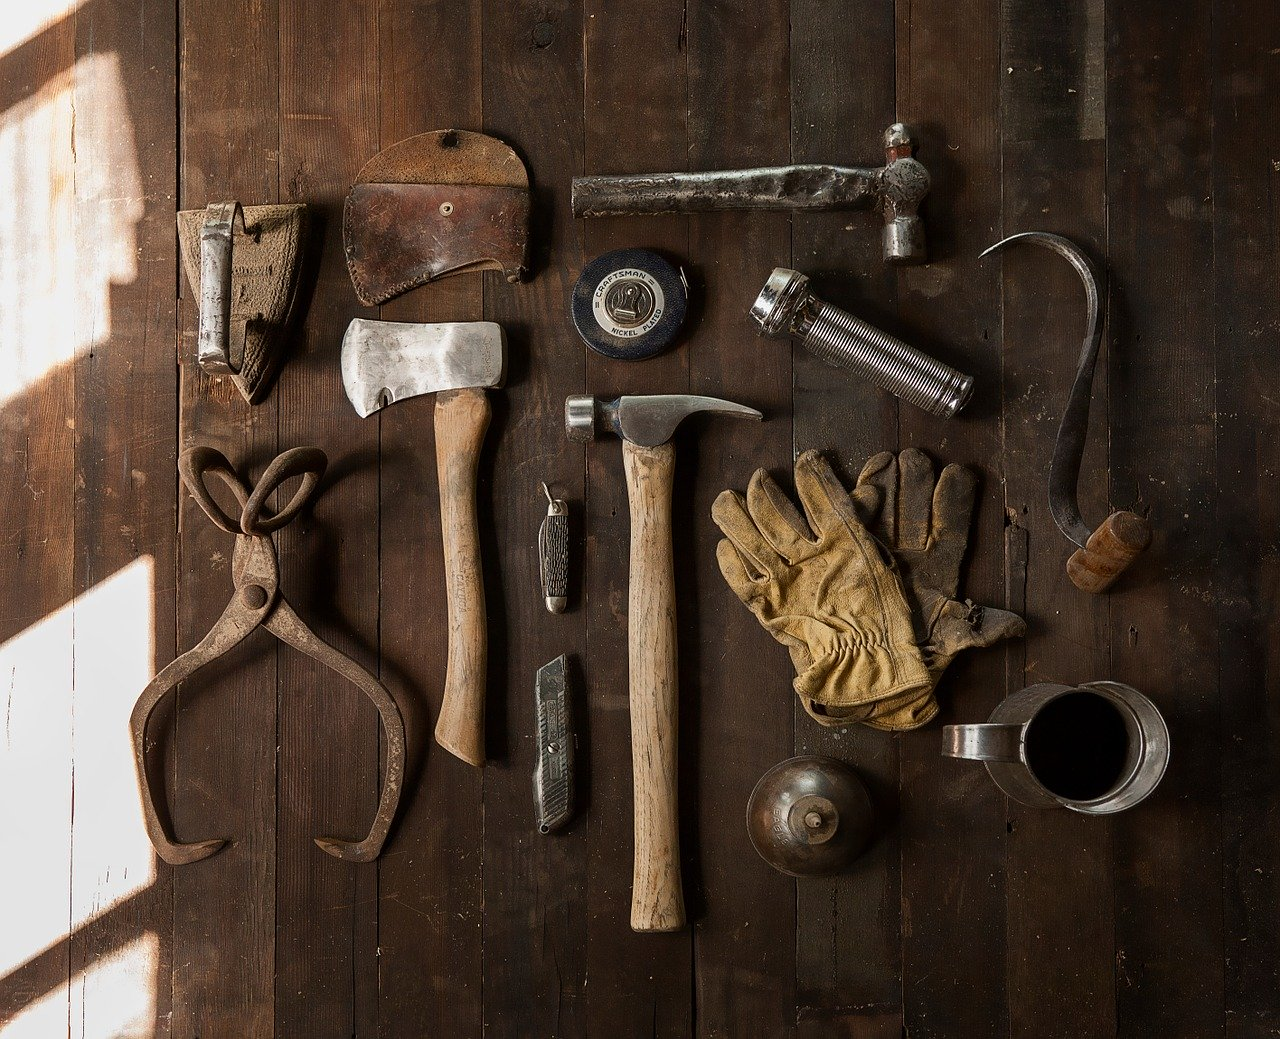 Tools to be used